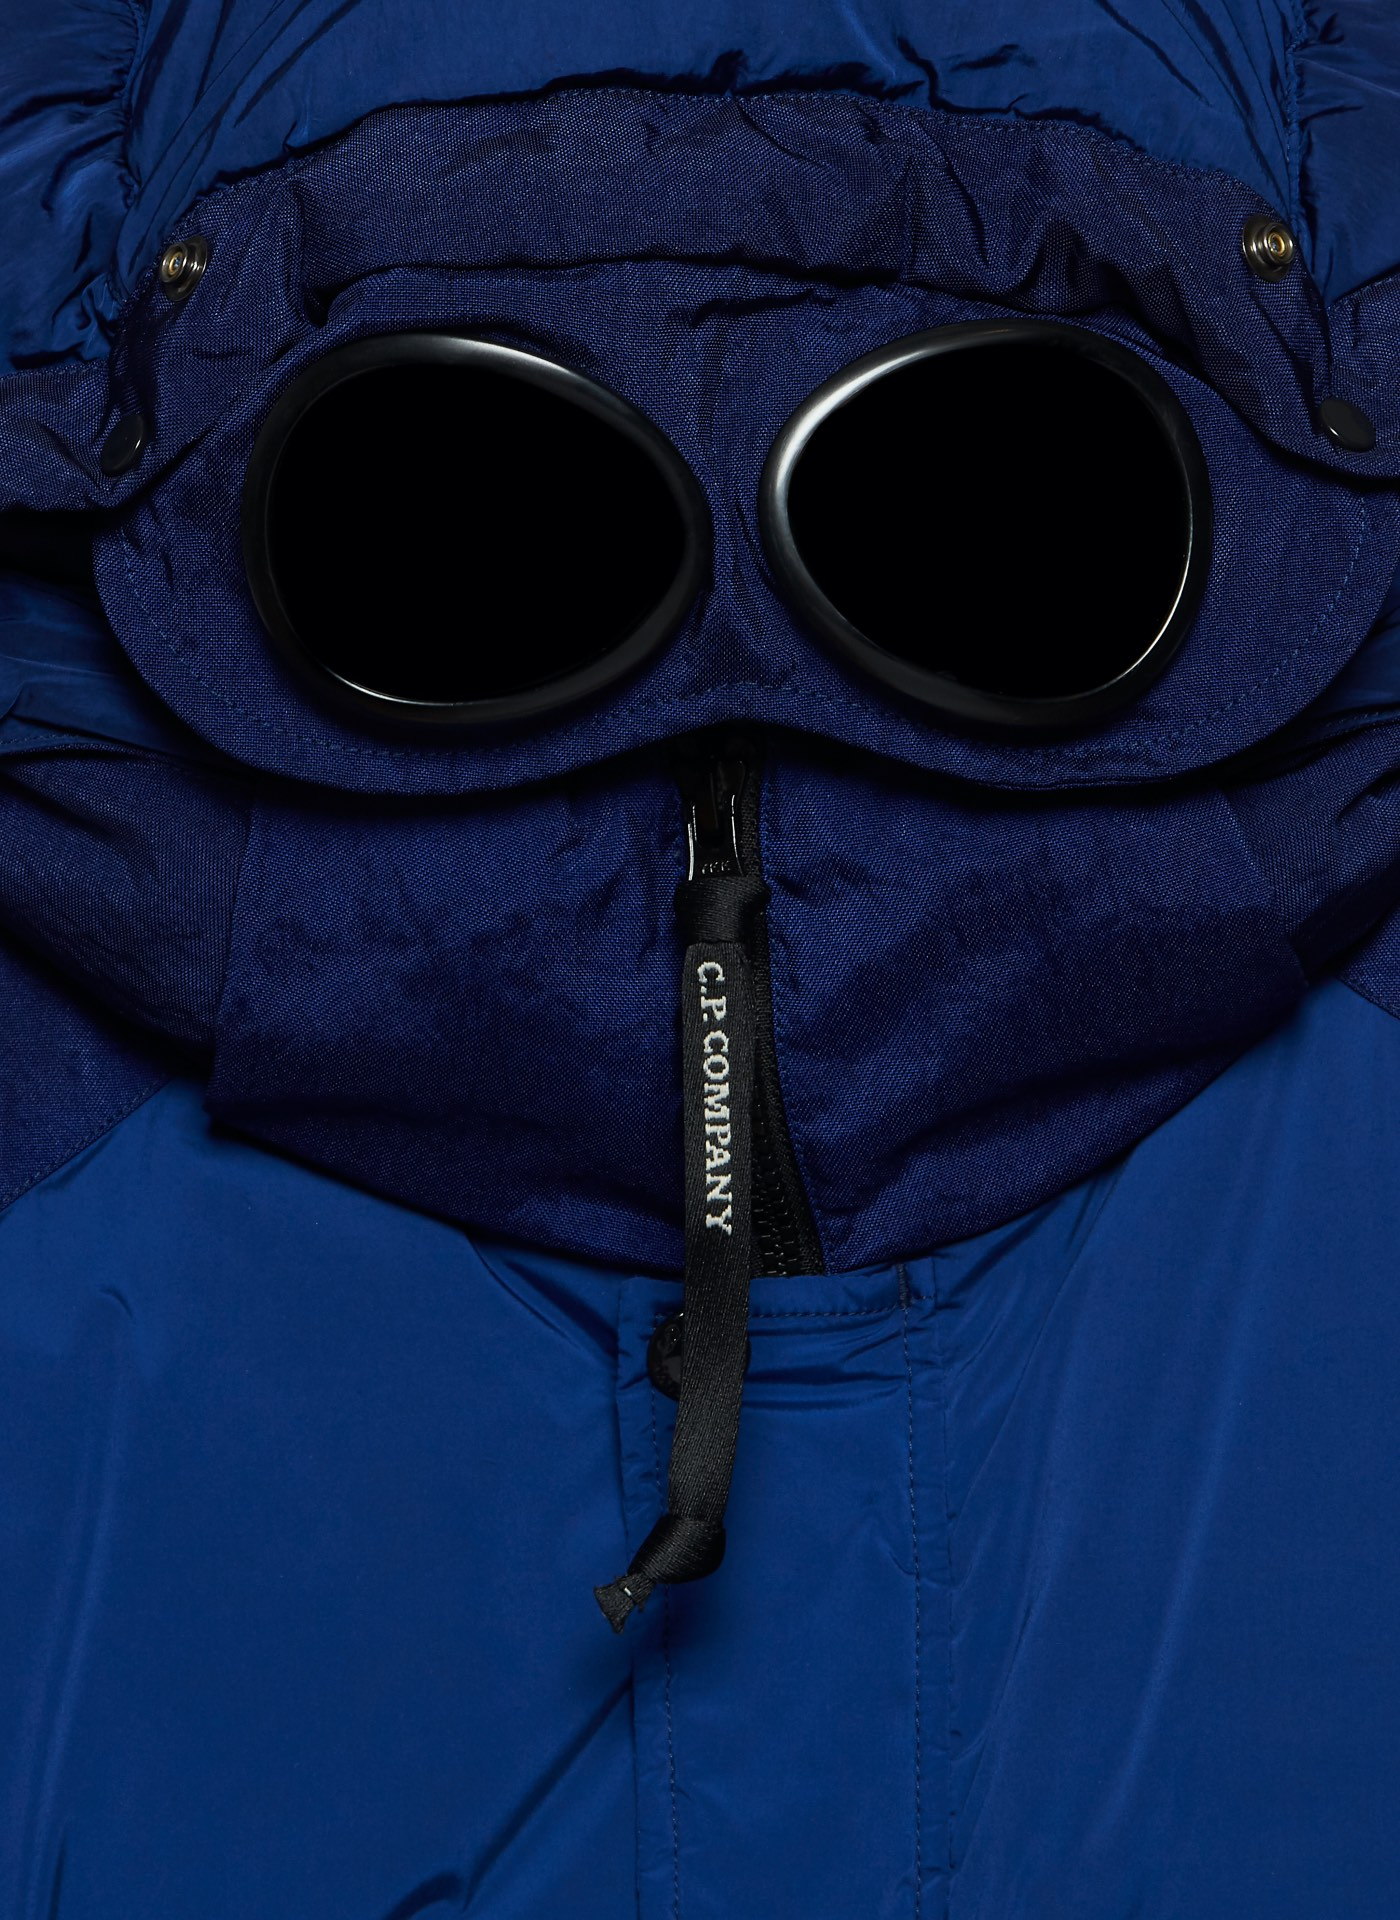 Blue C.P. Company jacket hoodie with iconic eye patches